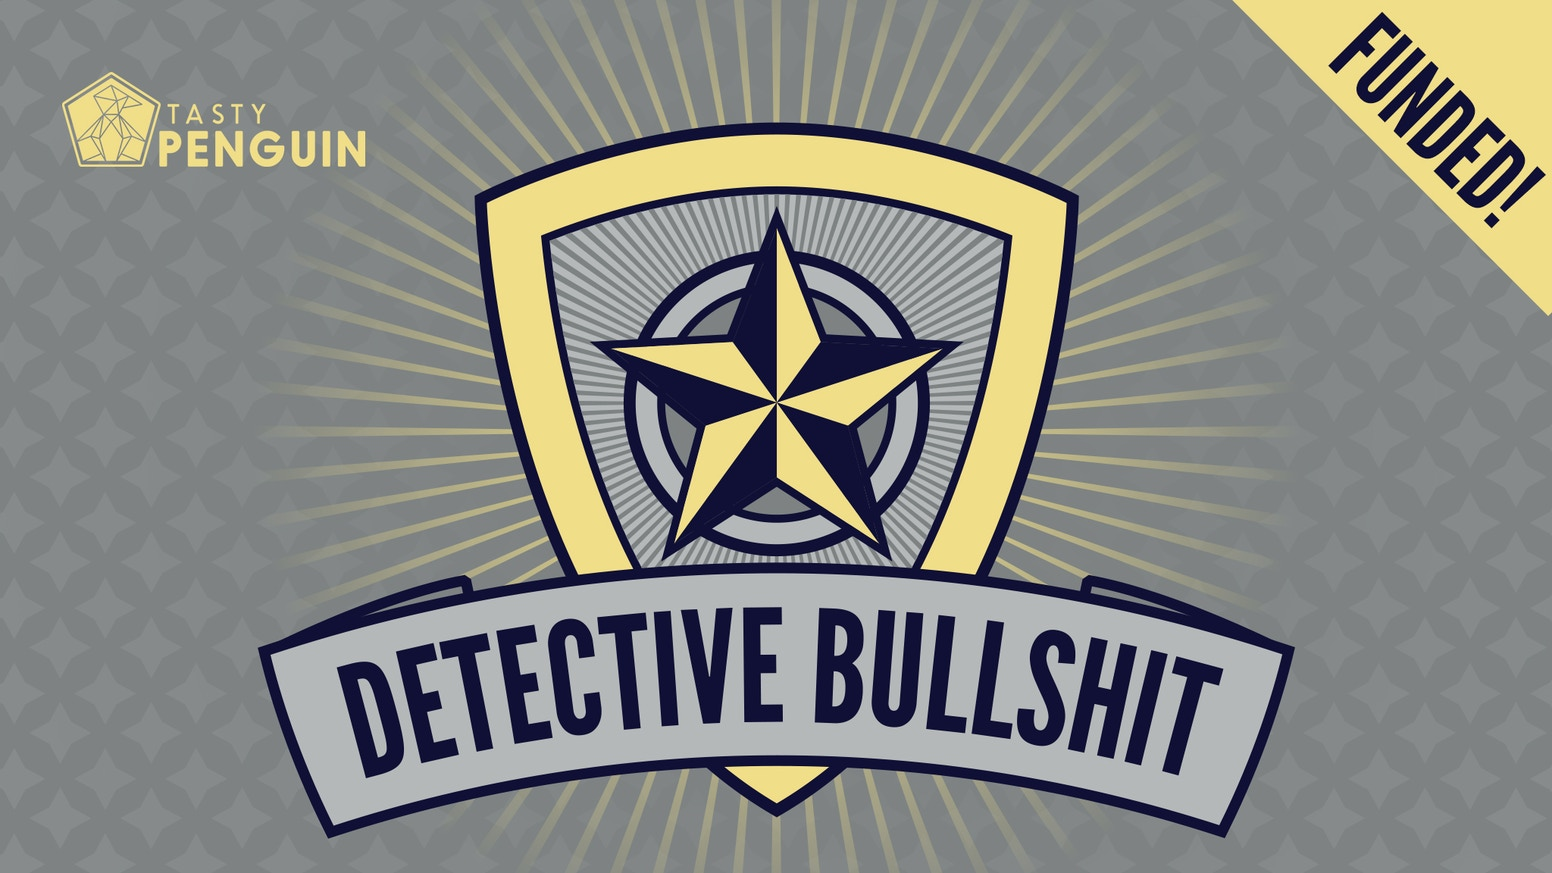 Bullshit your way to the top in this game of absurd crimes, dubious evidence, and outrageous characters you won't believe!